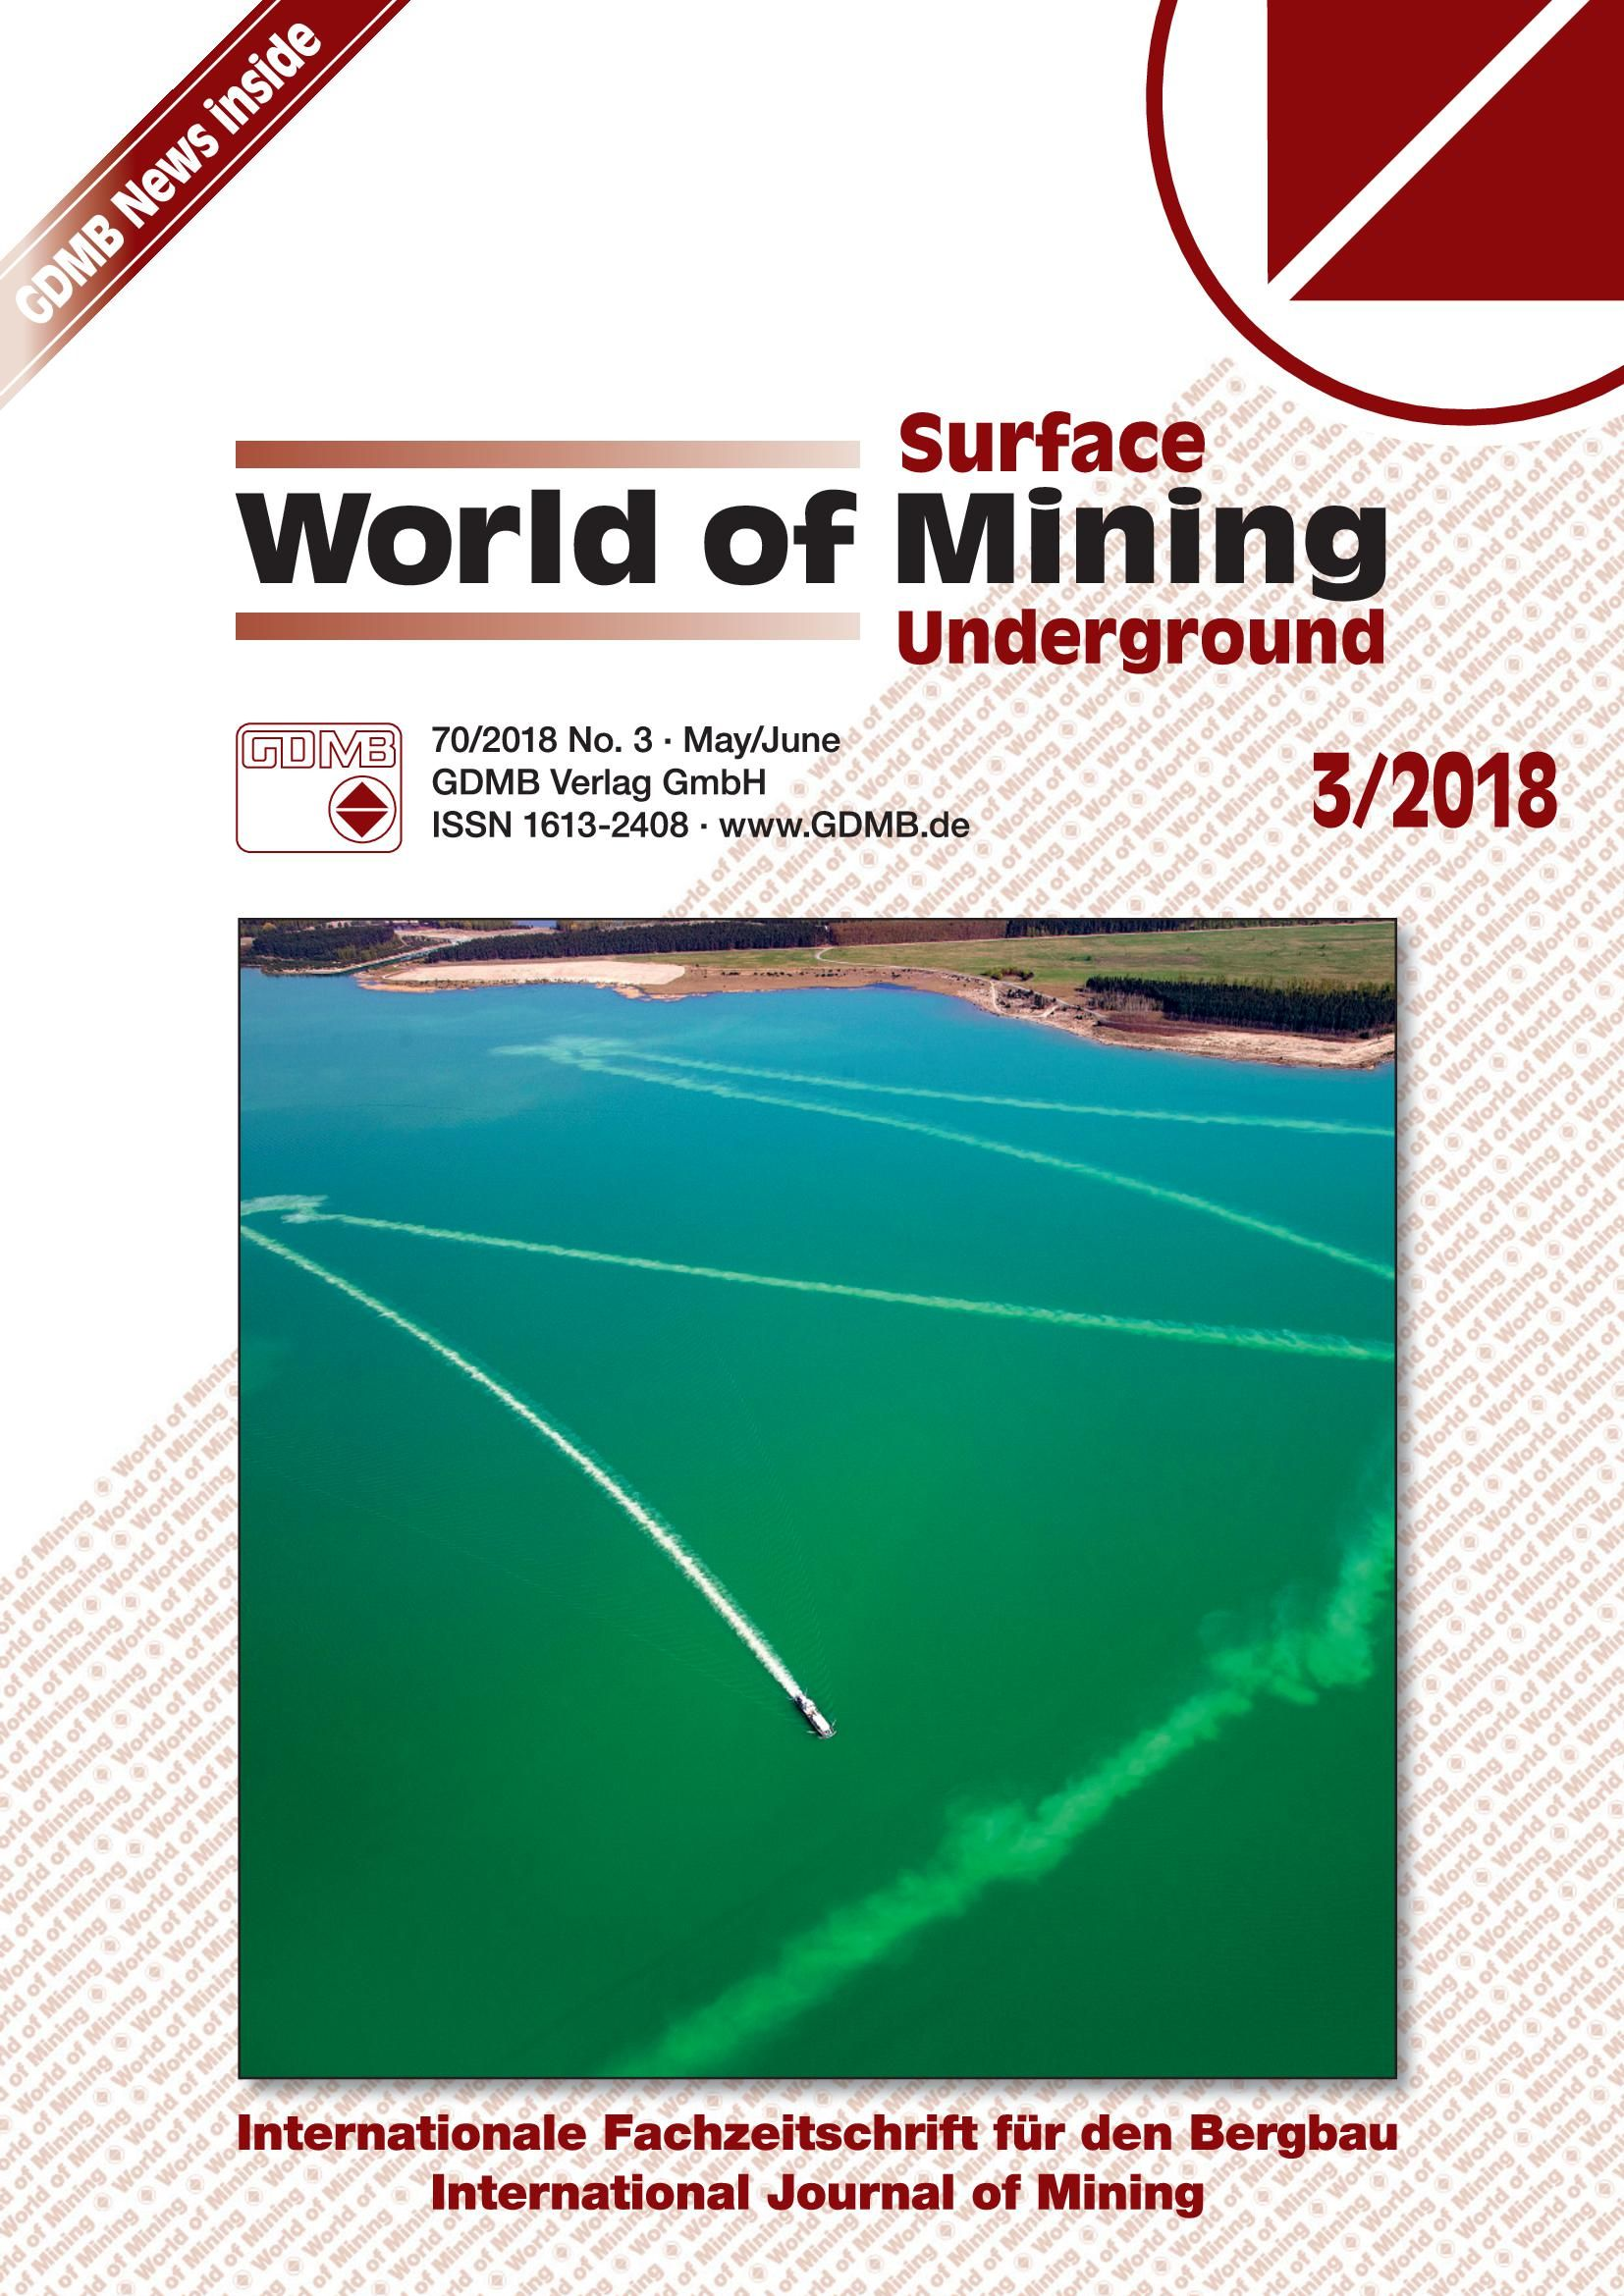 Wasserführender Kamin Erdwärme World Of Mining 3 2018 Pages 1 50 Text Version Fliphtml5